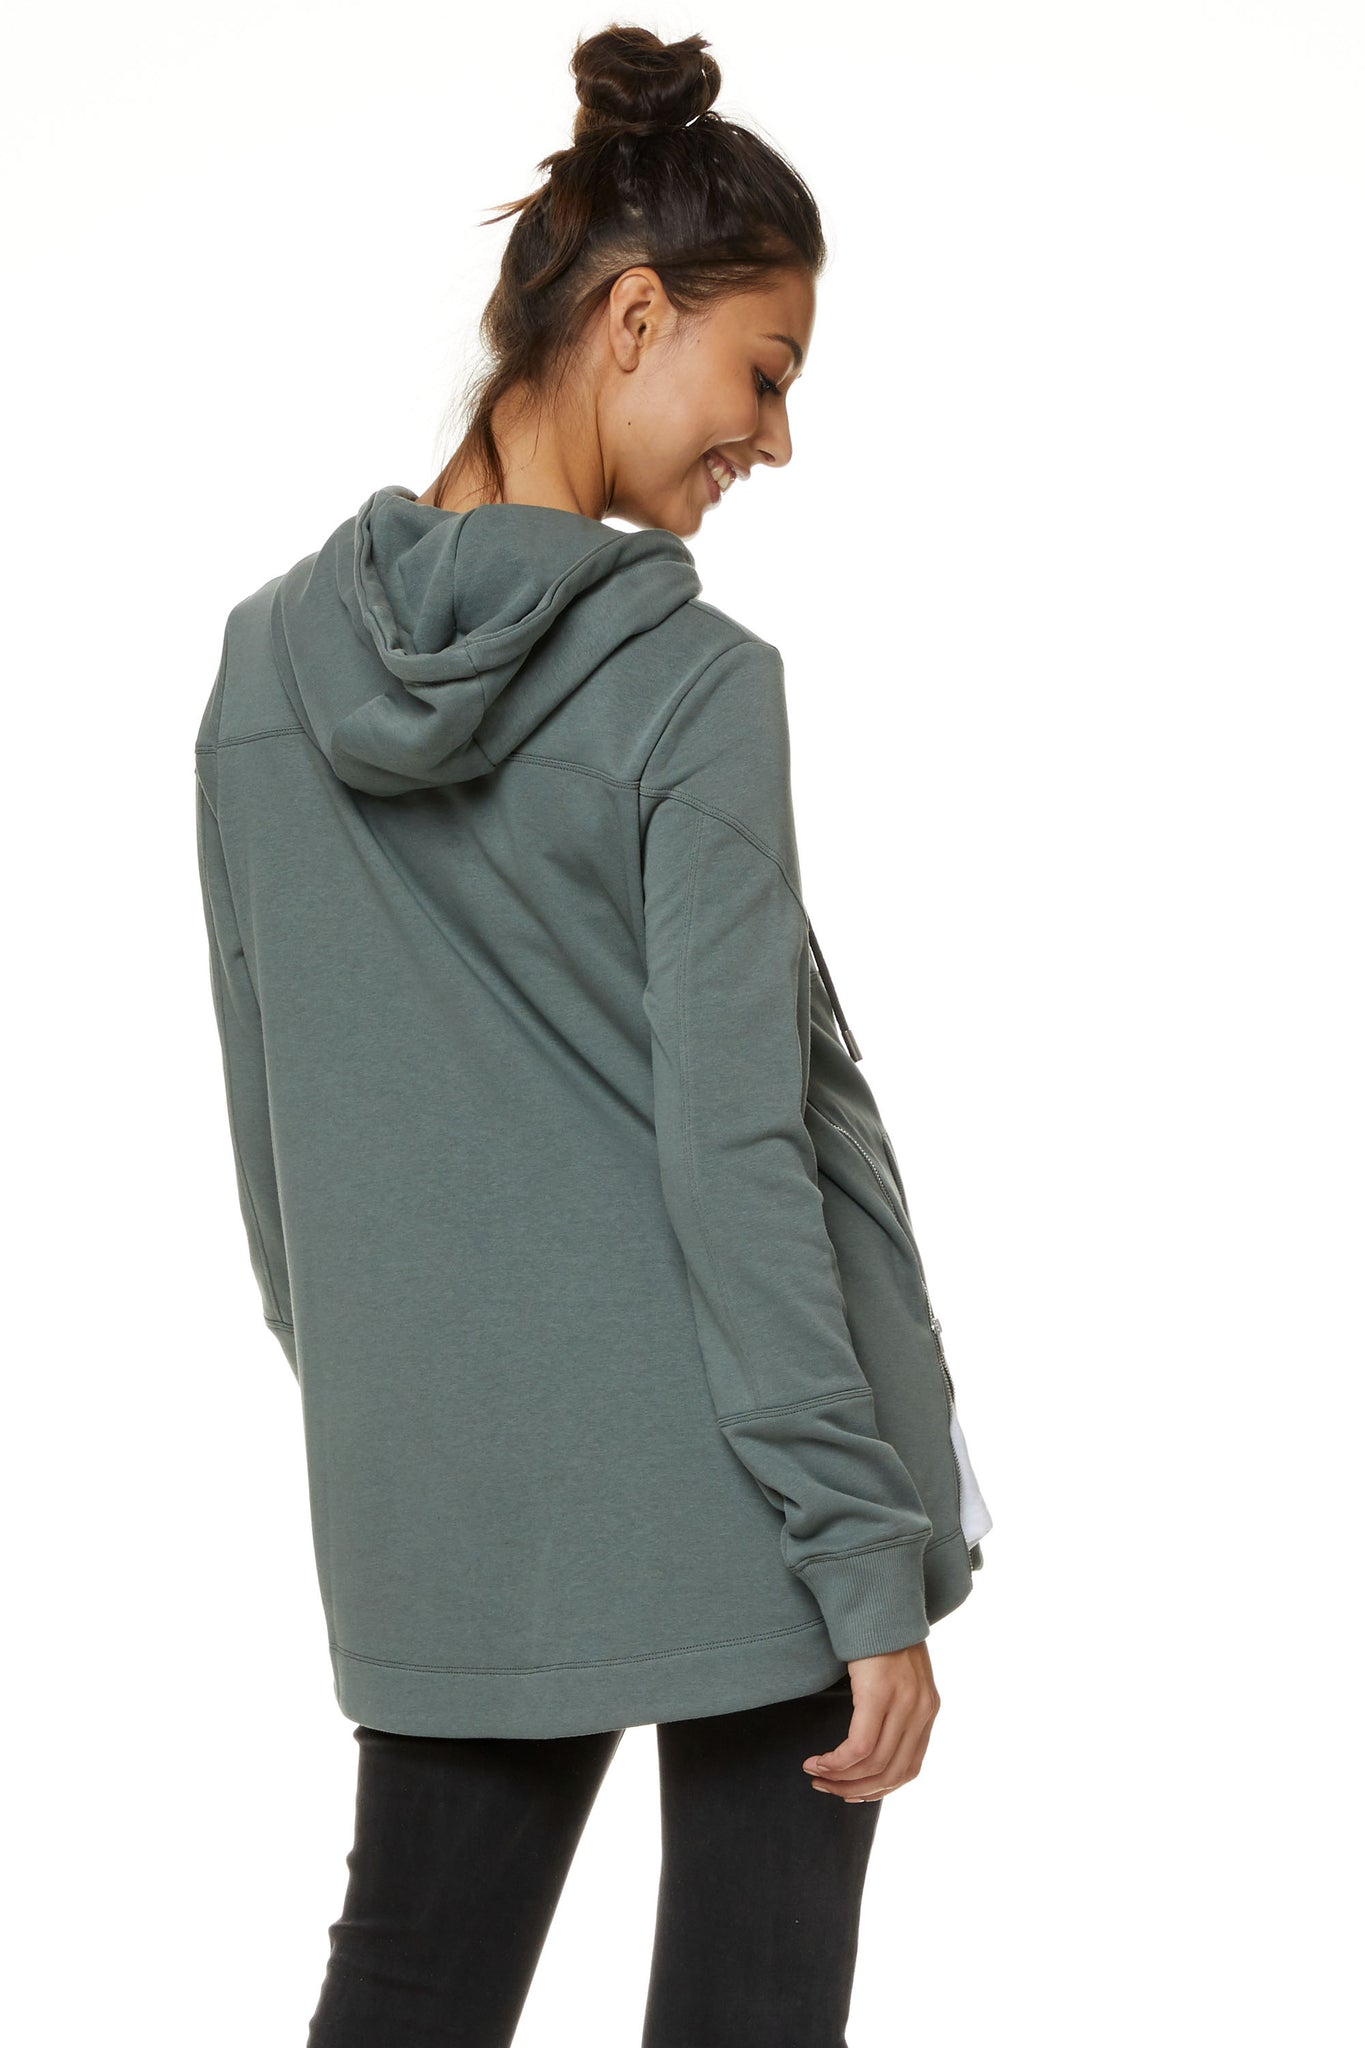 Maternity and Nursing Hoodie Khaki Image3